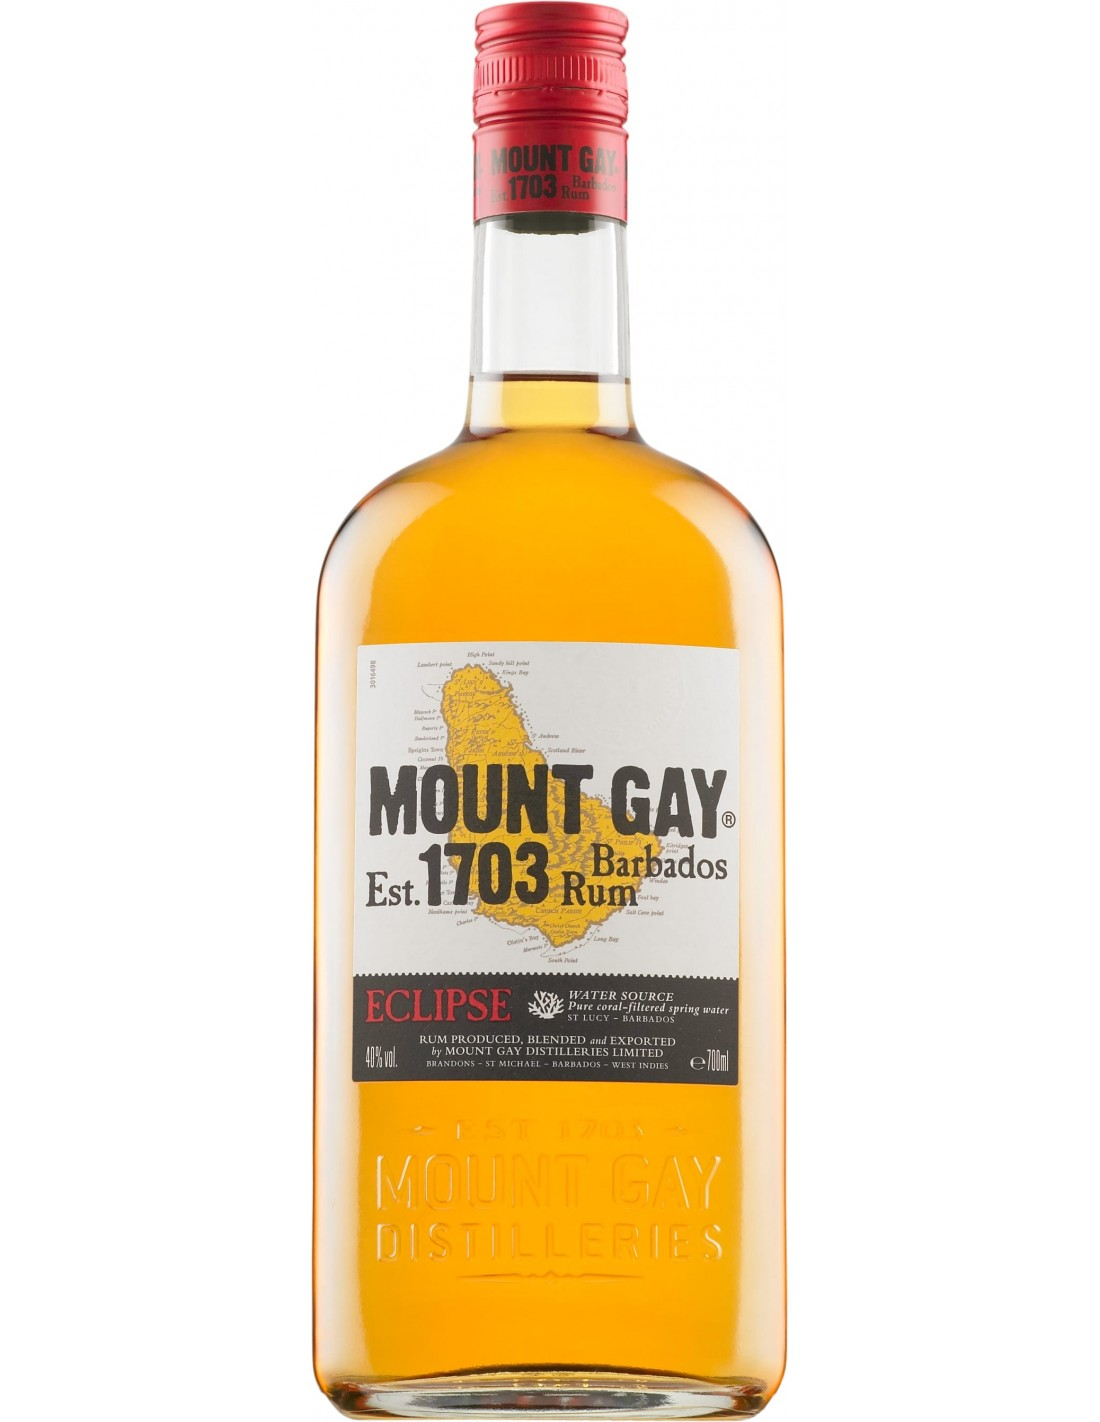 Rom Mount Gay Eclipse, 40% alc., 0.7L